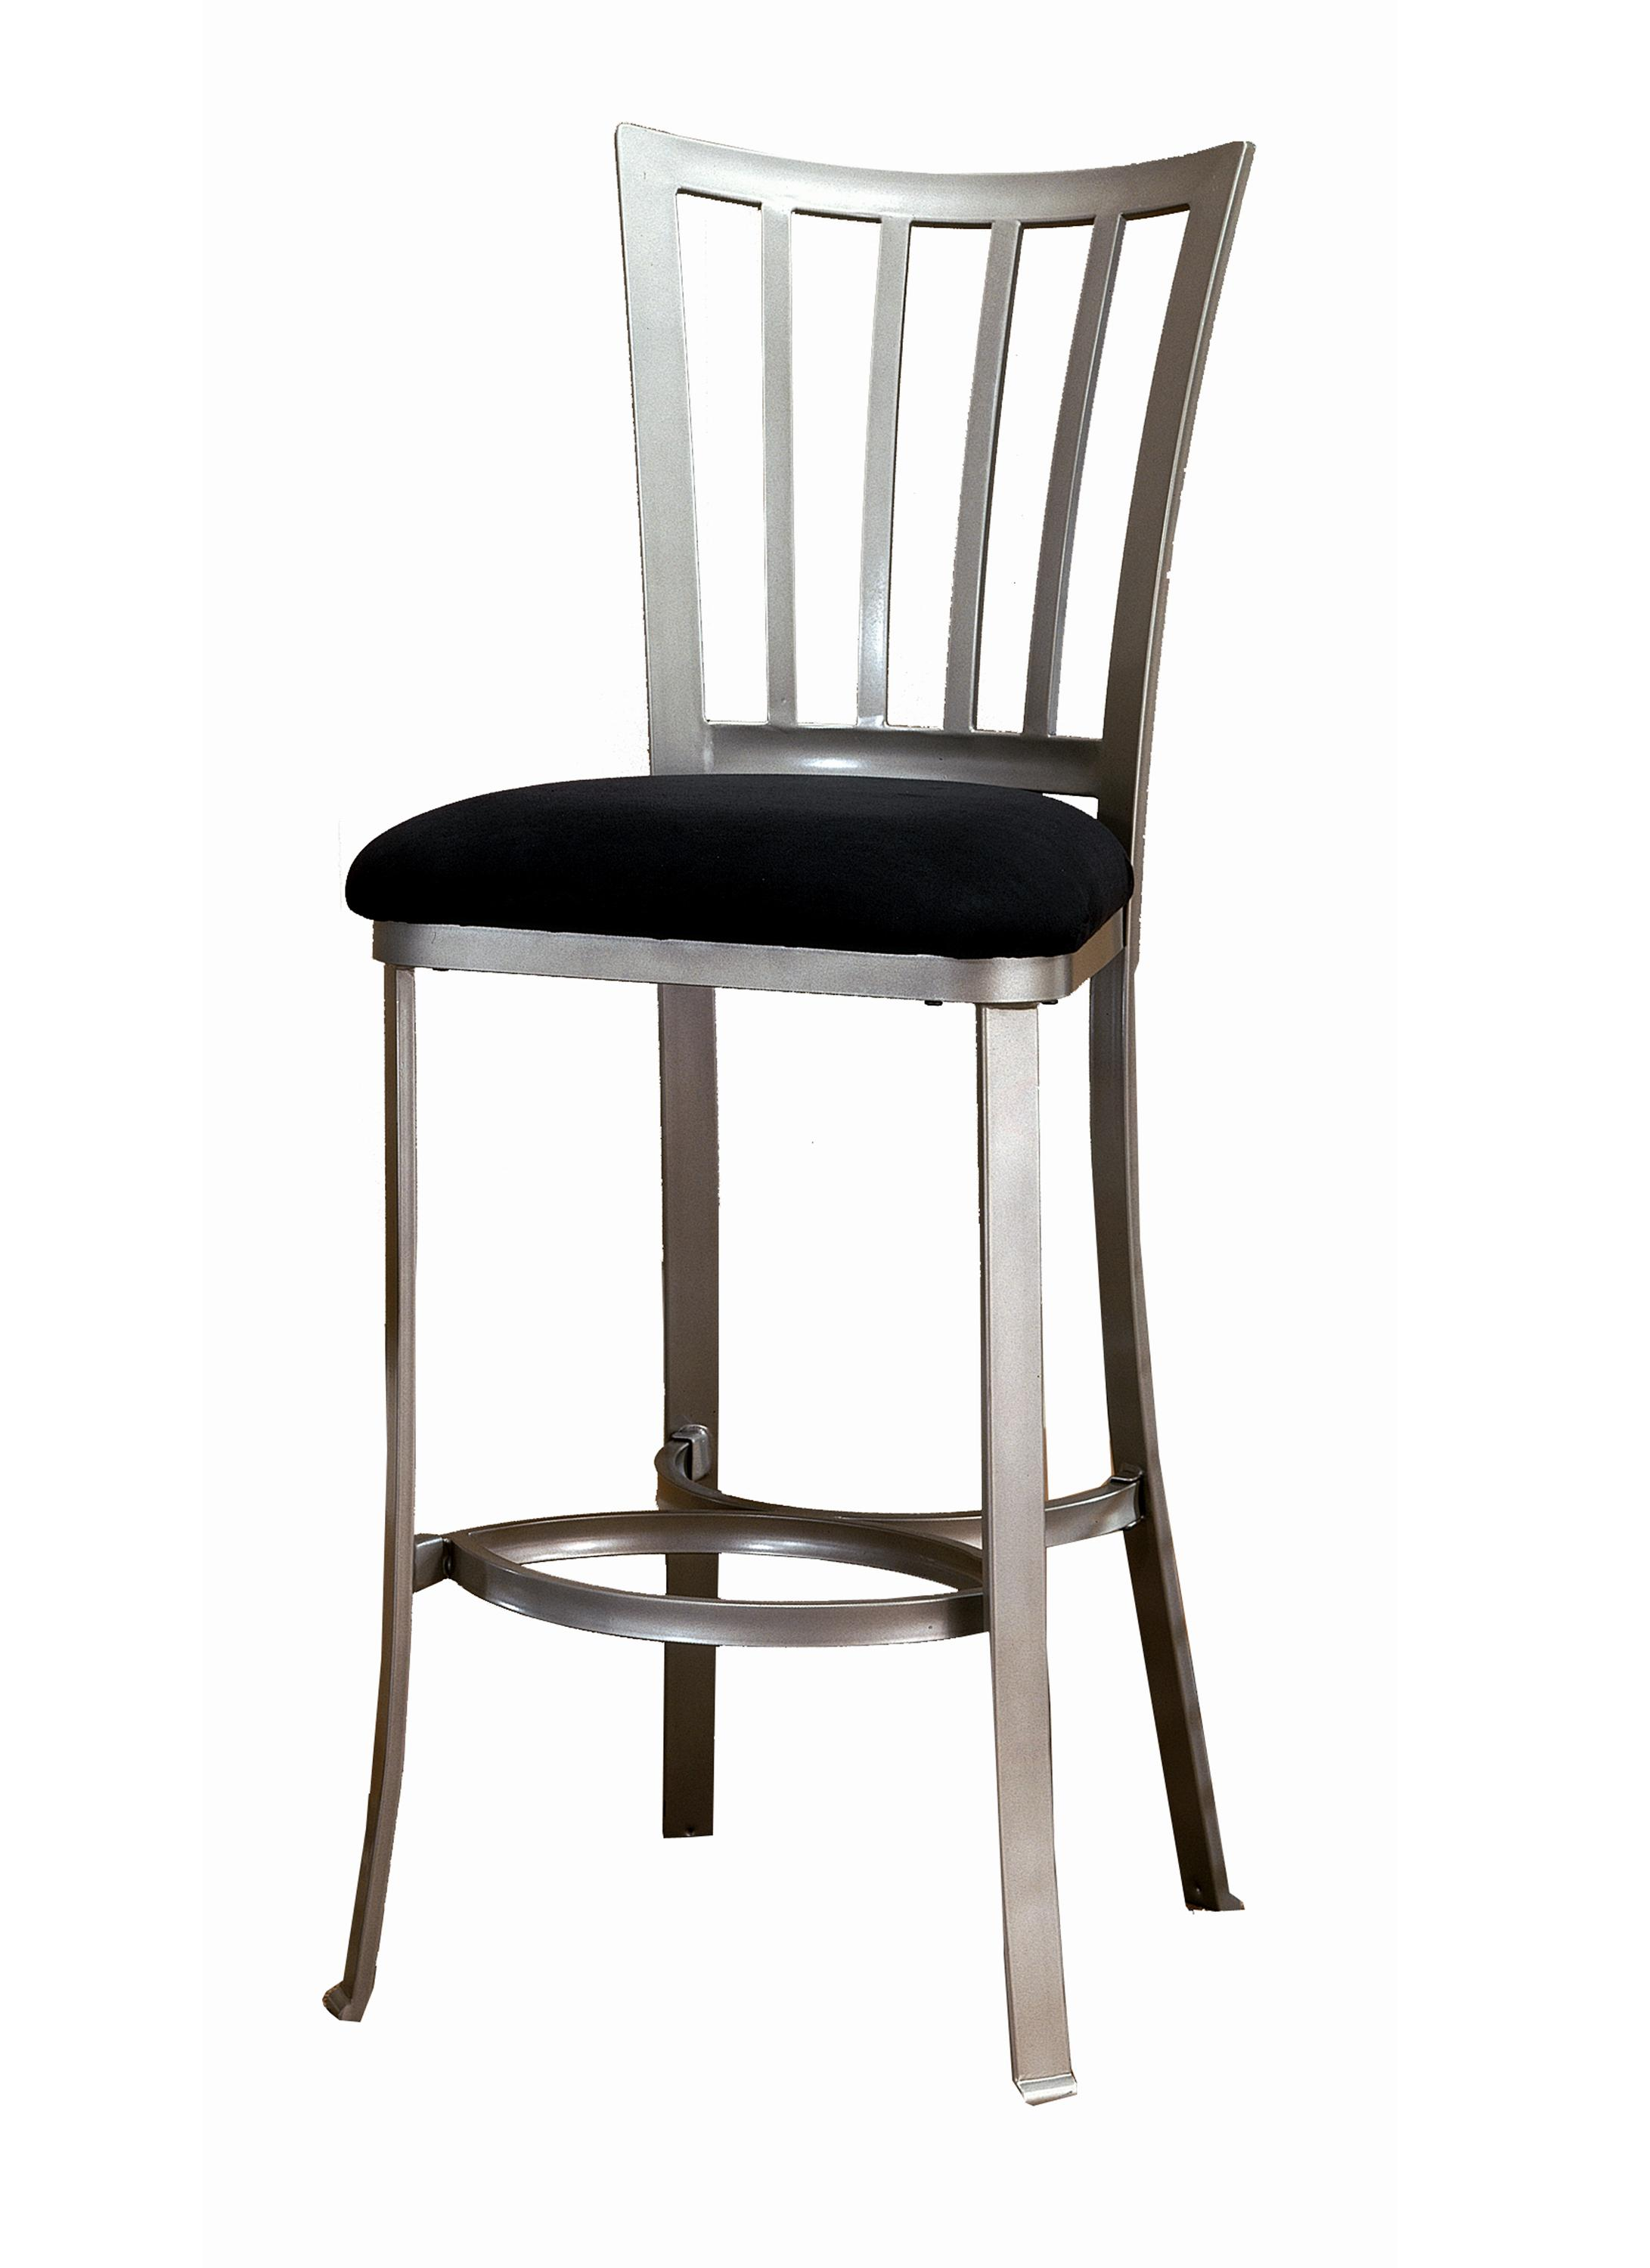 Metal stools 26 counter height delray stool by hillsdale wolf furniture - Average height of bar stools ...